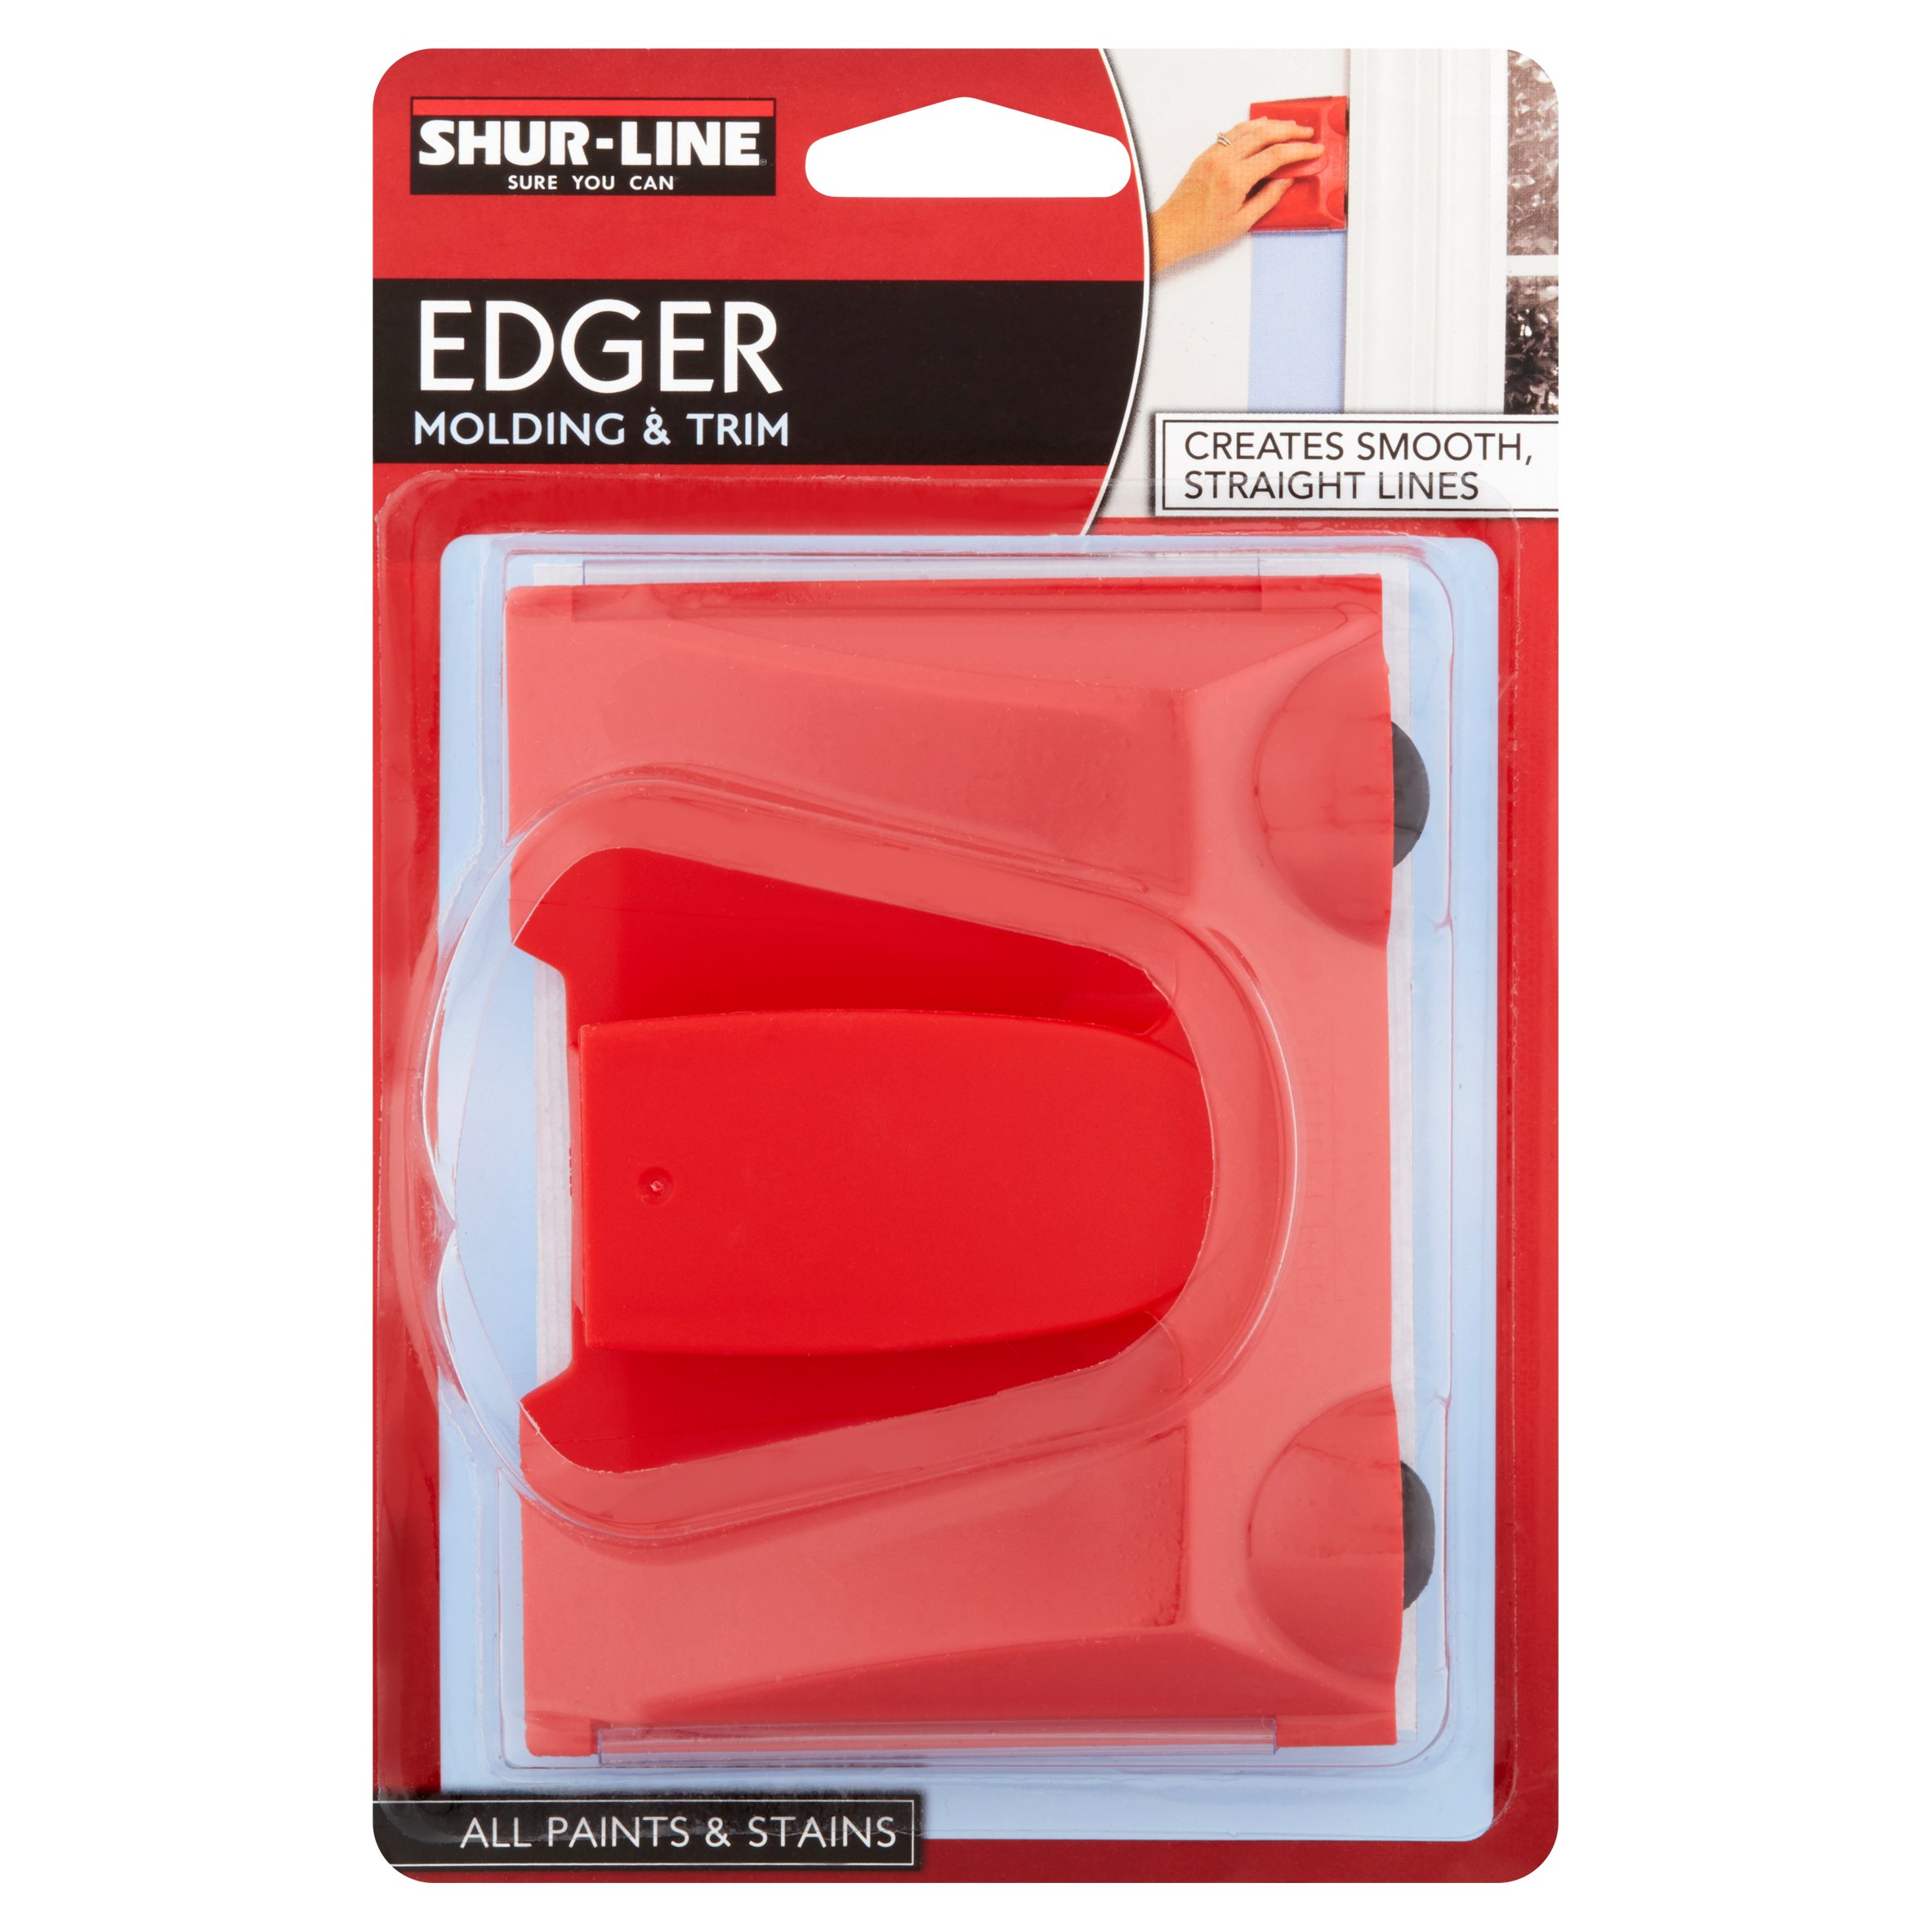 Shur-Line All Paints & Stains Edger Molding & Trim